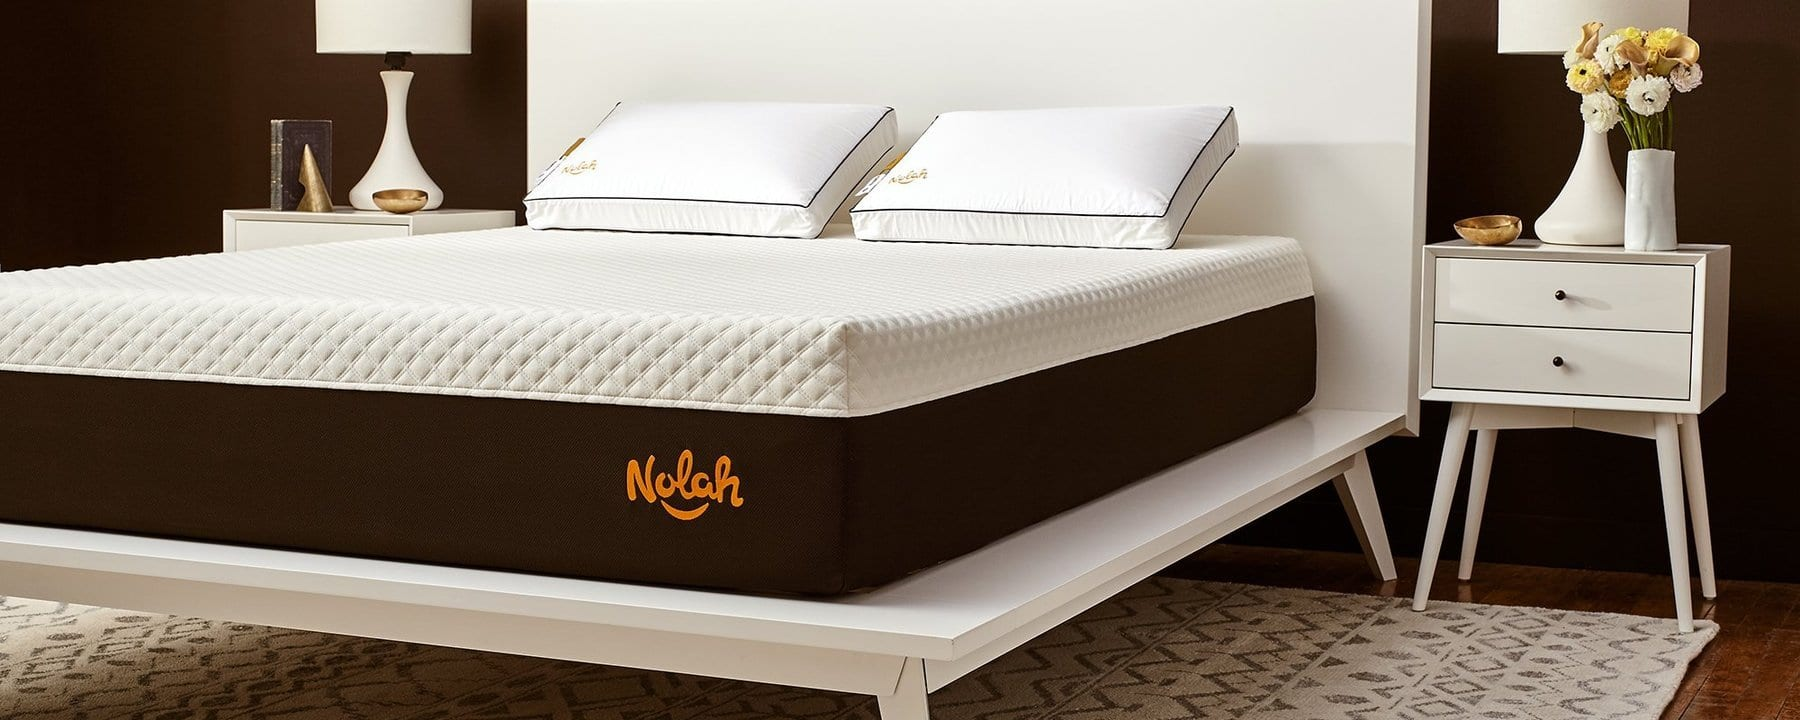 Nolah vs Winkbed: Which is right for you?